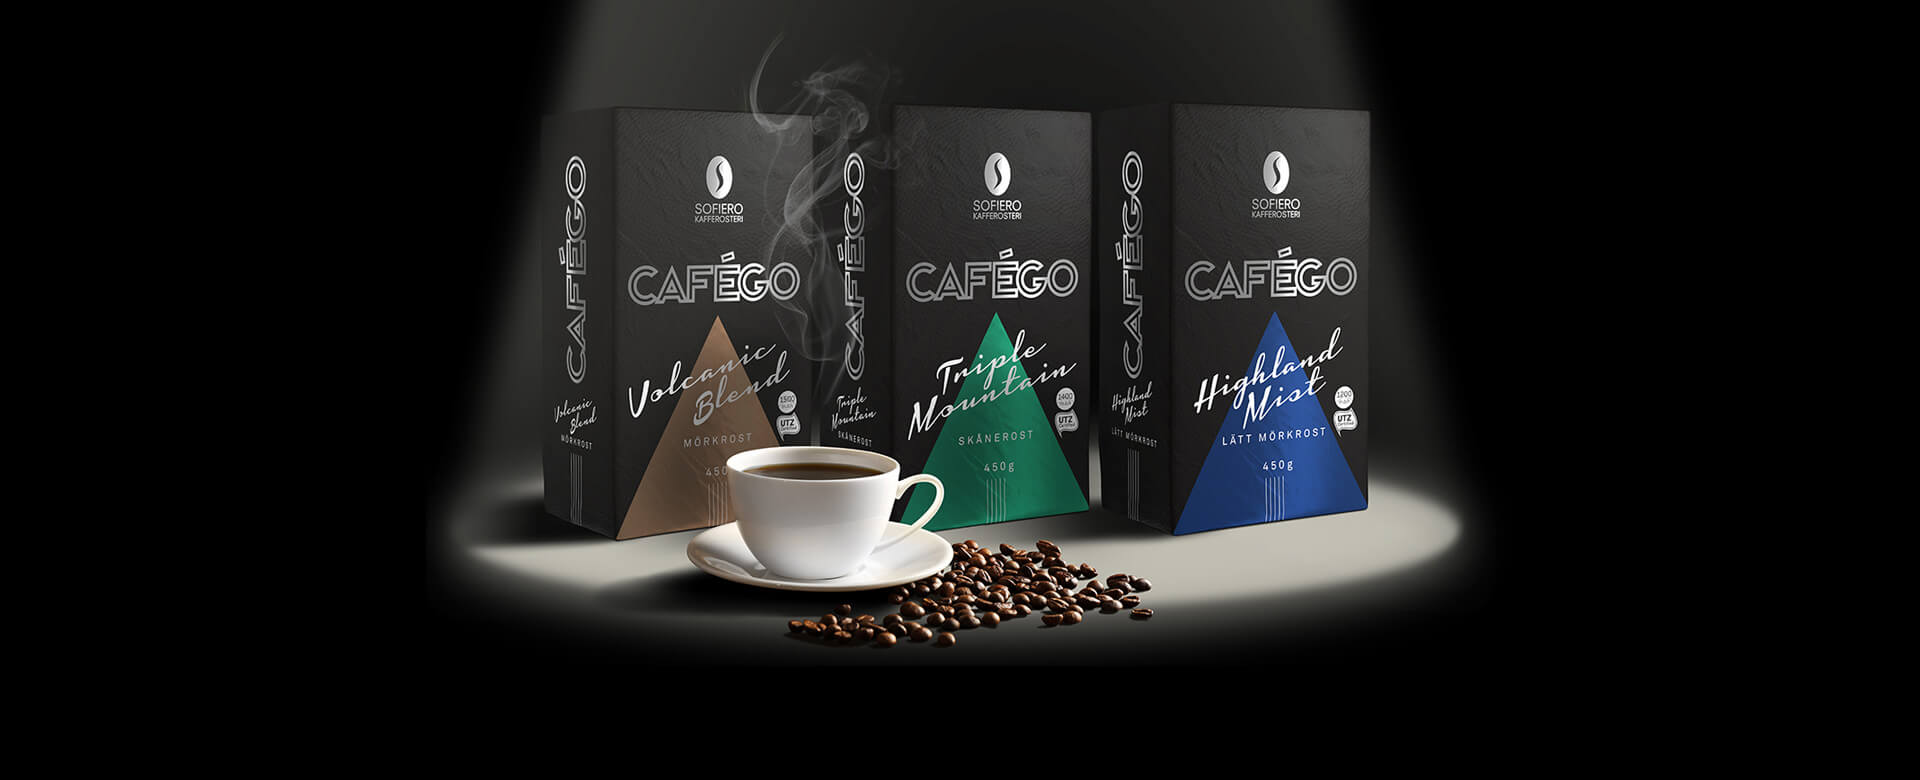 3 cafego products packages